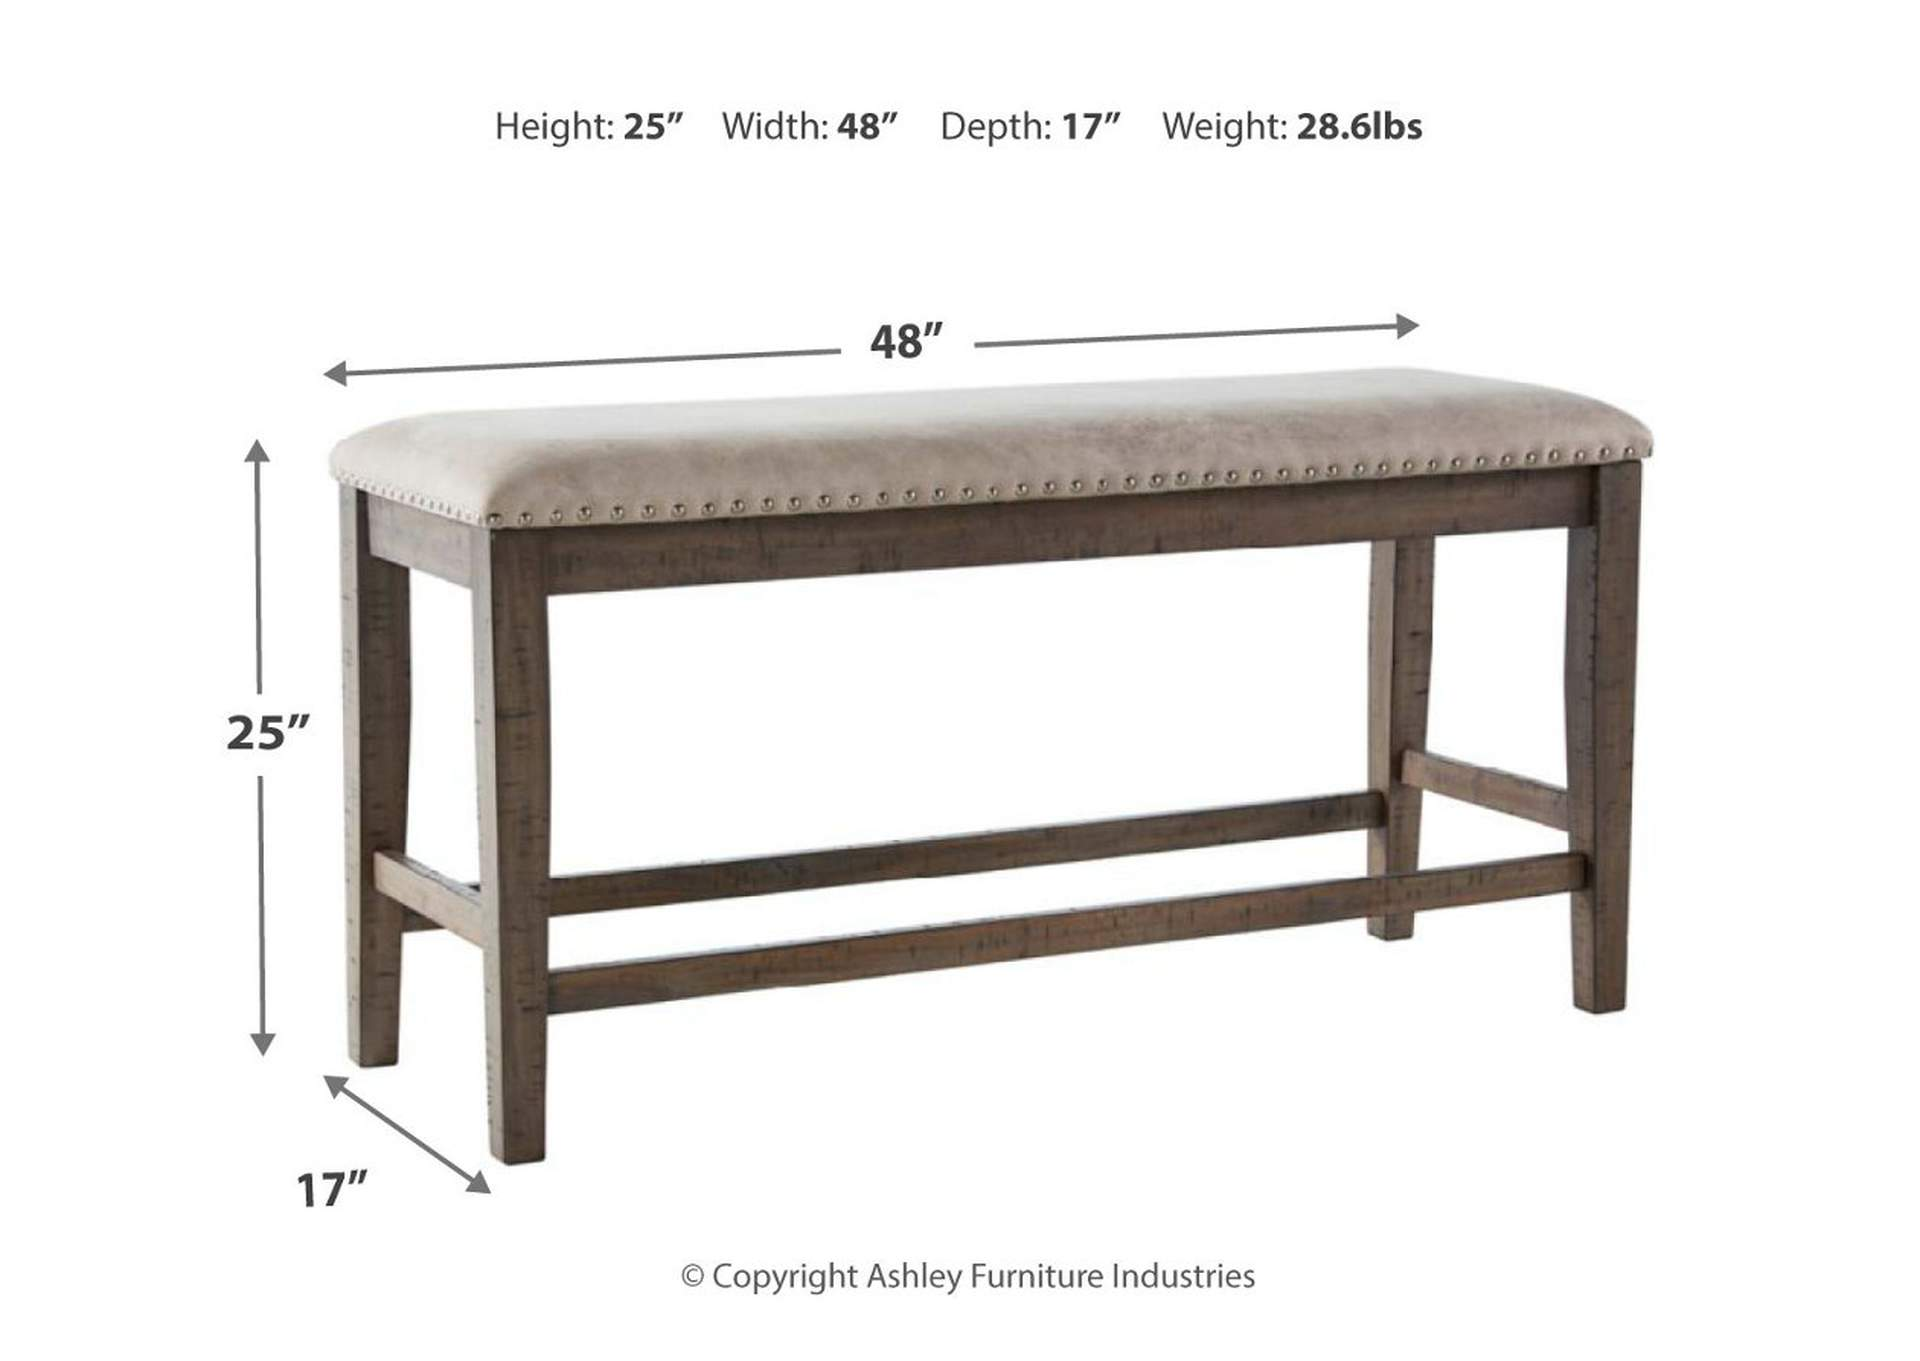 Johurst Counter Height Dining Room Bench,Benchcraft